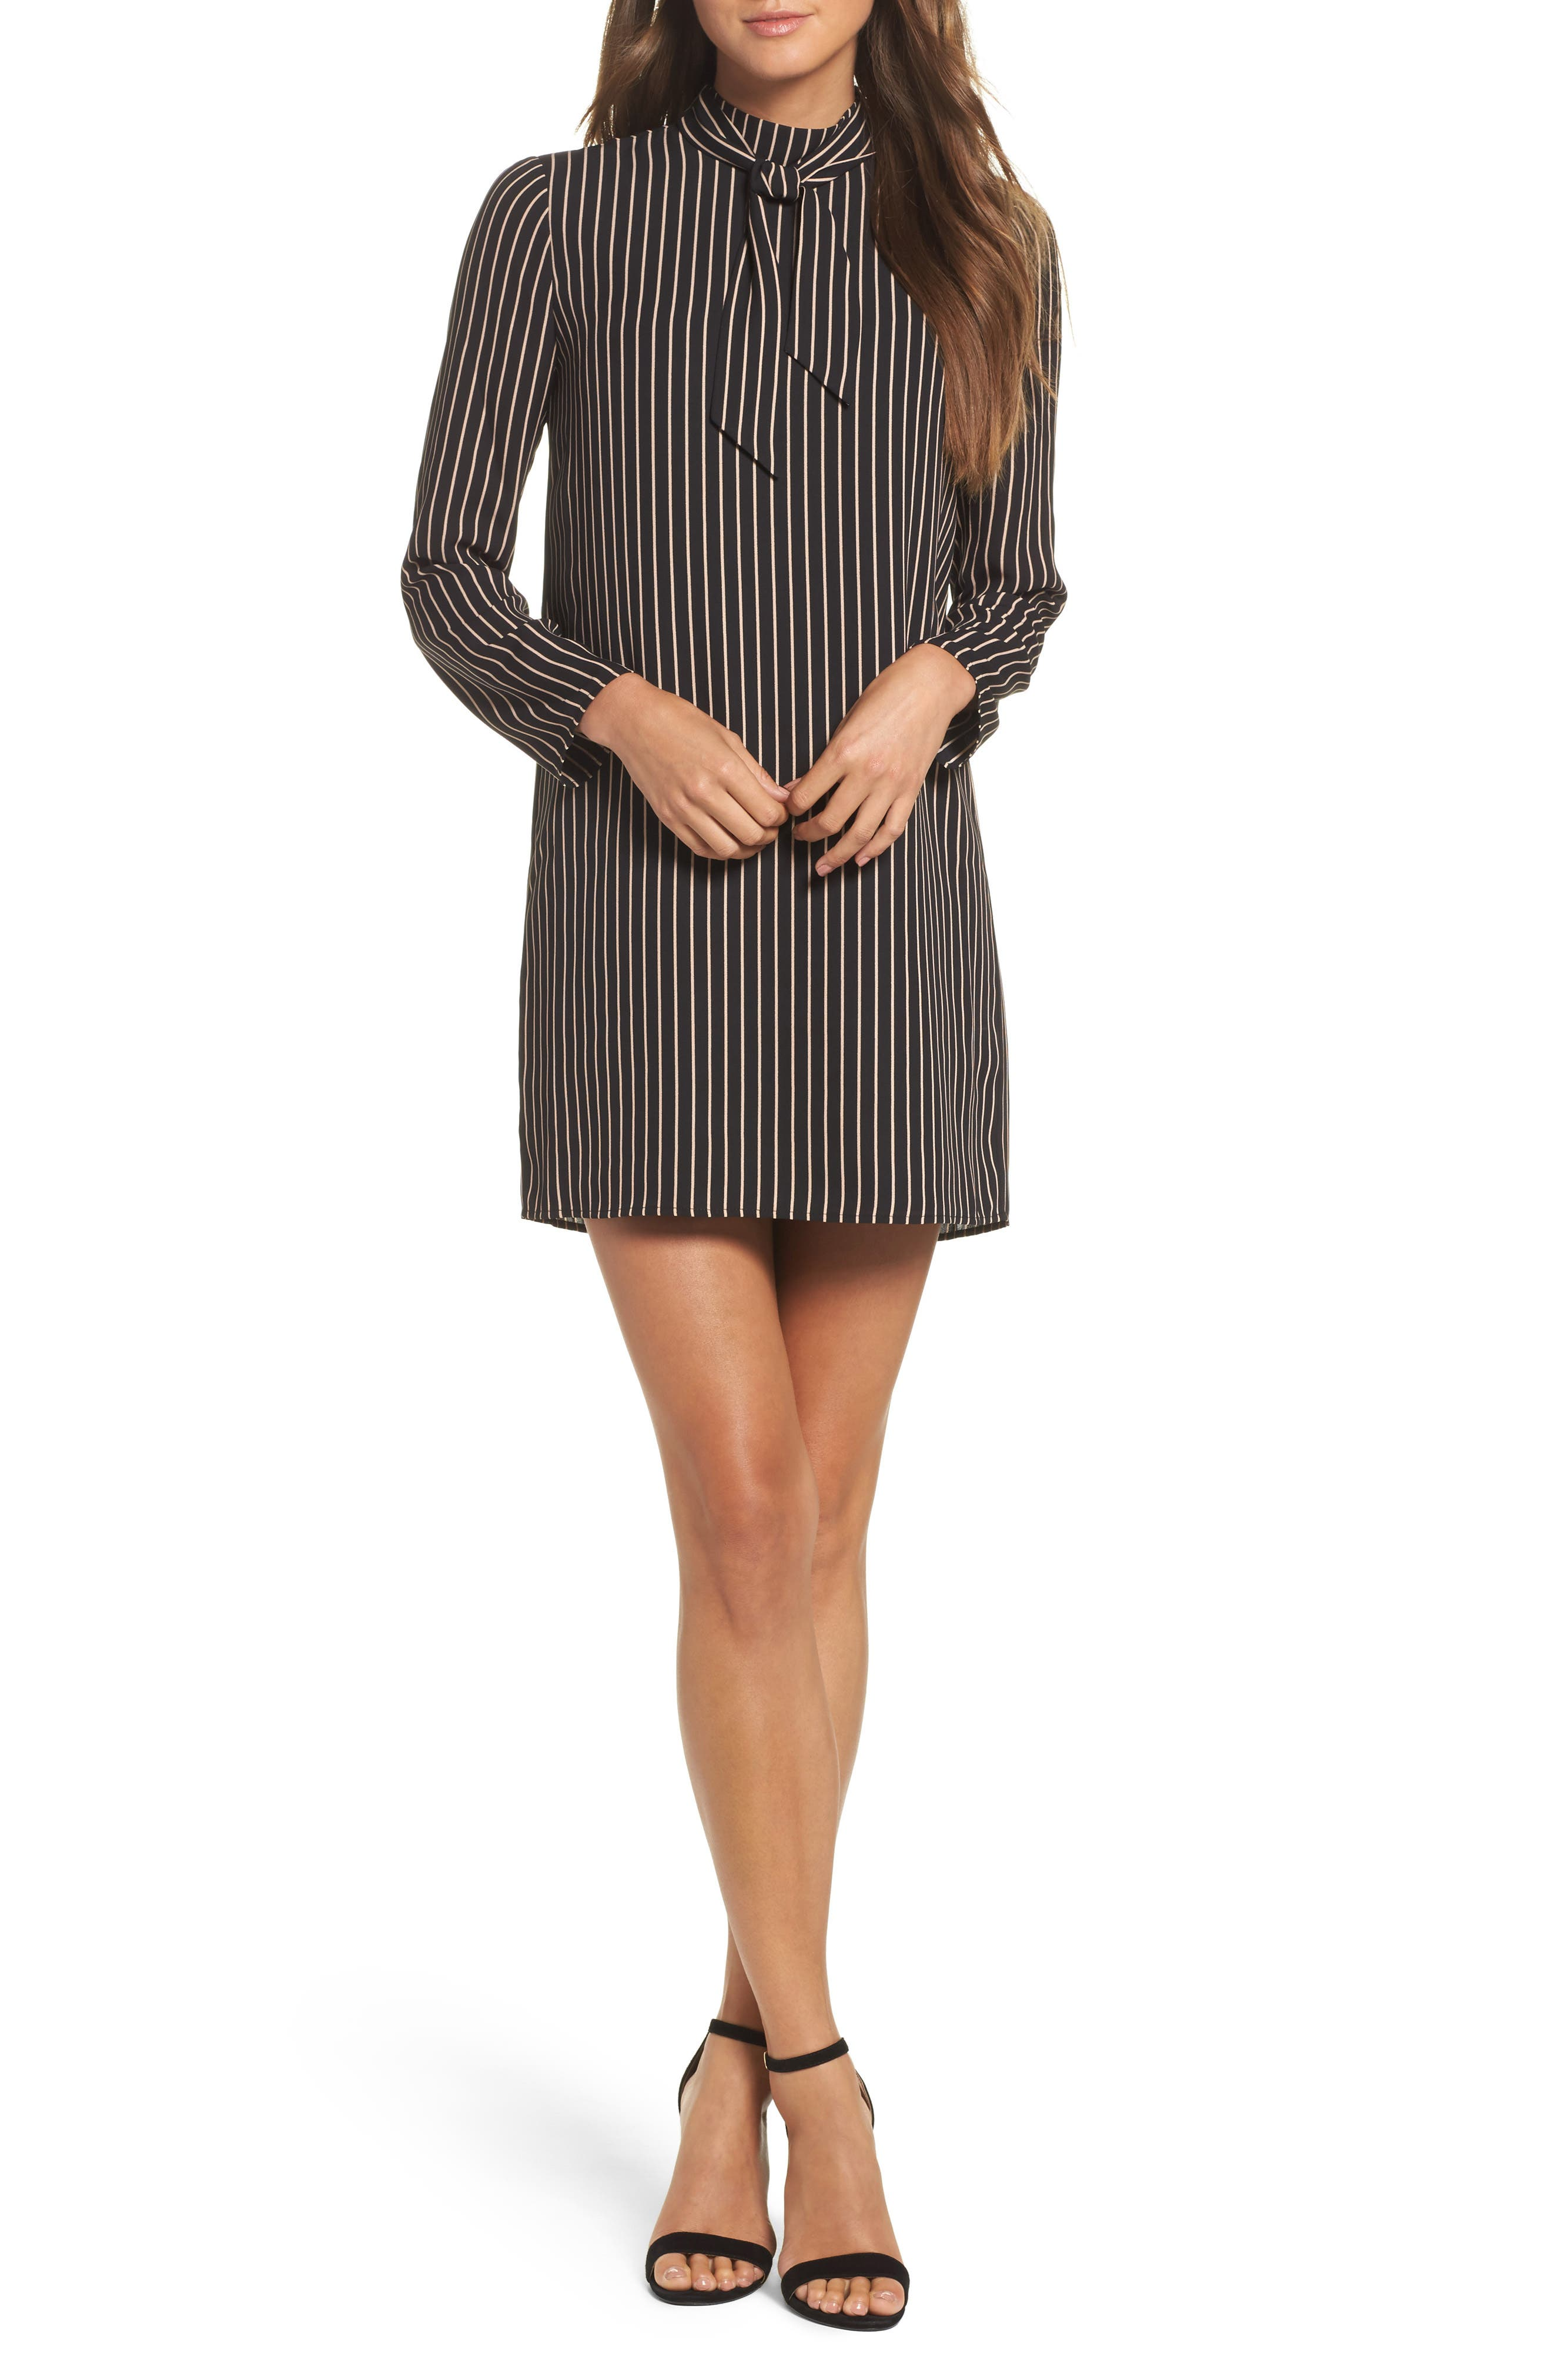 She-E-O Shift Dress,                         Main,                         color, Black/ Tan Stripe